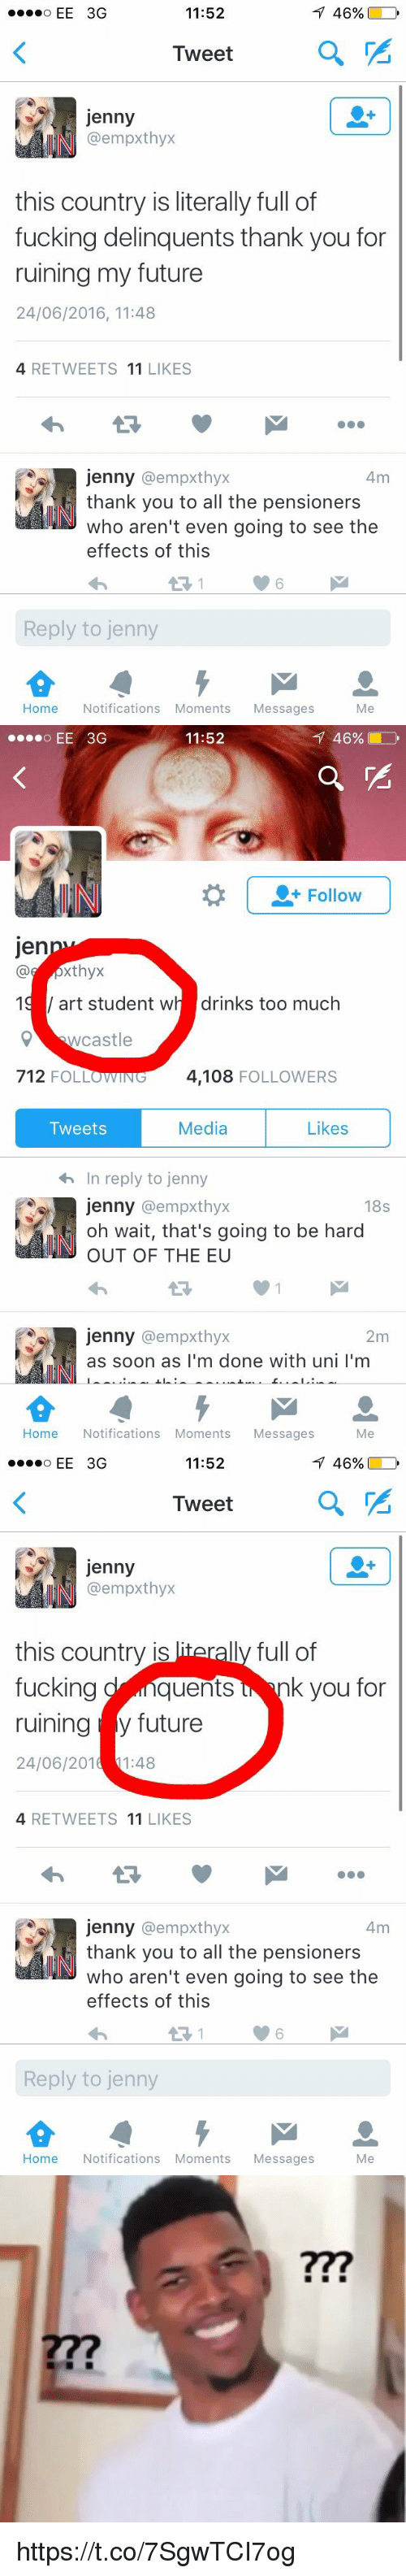 iter: 11:52  46%  Tweet  a  Jenny  @empxthyx  this country is literally full of  fucking delinquents thank you for  ruining my future  24/06/2016, 11:48  4 RETWEETS  11  LIKES  jenny (a empxthyx  4m  thank you to all the pensioners  who aren't even going to see the  effects of this  Reply to jenny  Home Notifications Moments  Messages  Me   46%.  11:52  Follow  Jen  xthyx  19 art student w  drinks too much  Q castle  712 FOLLOWING  4,108  FOLLOWERS  Media  Likes  Tweets  4h In reply to jenny  jenny a empxthyx  18s  oh wait, that's going to be hard  OUT OF THE EU  Jenny  @empxthyx  2m  as soon as I'm done with uni l'm  Home Notifications Moments  Messages  Me   11:52  46%  Tweet  a  Jenny  (a empxthyx  this country is  iterally full of  fucking  quents  k you for  ruining y future  24/06/201  11:48  4 RETWEETS  11  LIKES  jenny @empxthyx  4m  thank you to all the pensioners  who aren't even going to see the  effects of this  Reply to jenny  Home Notifications Moments  Messages  Me   m https://t.co/7SgwTCI7og